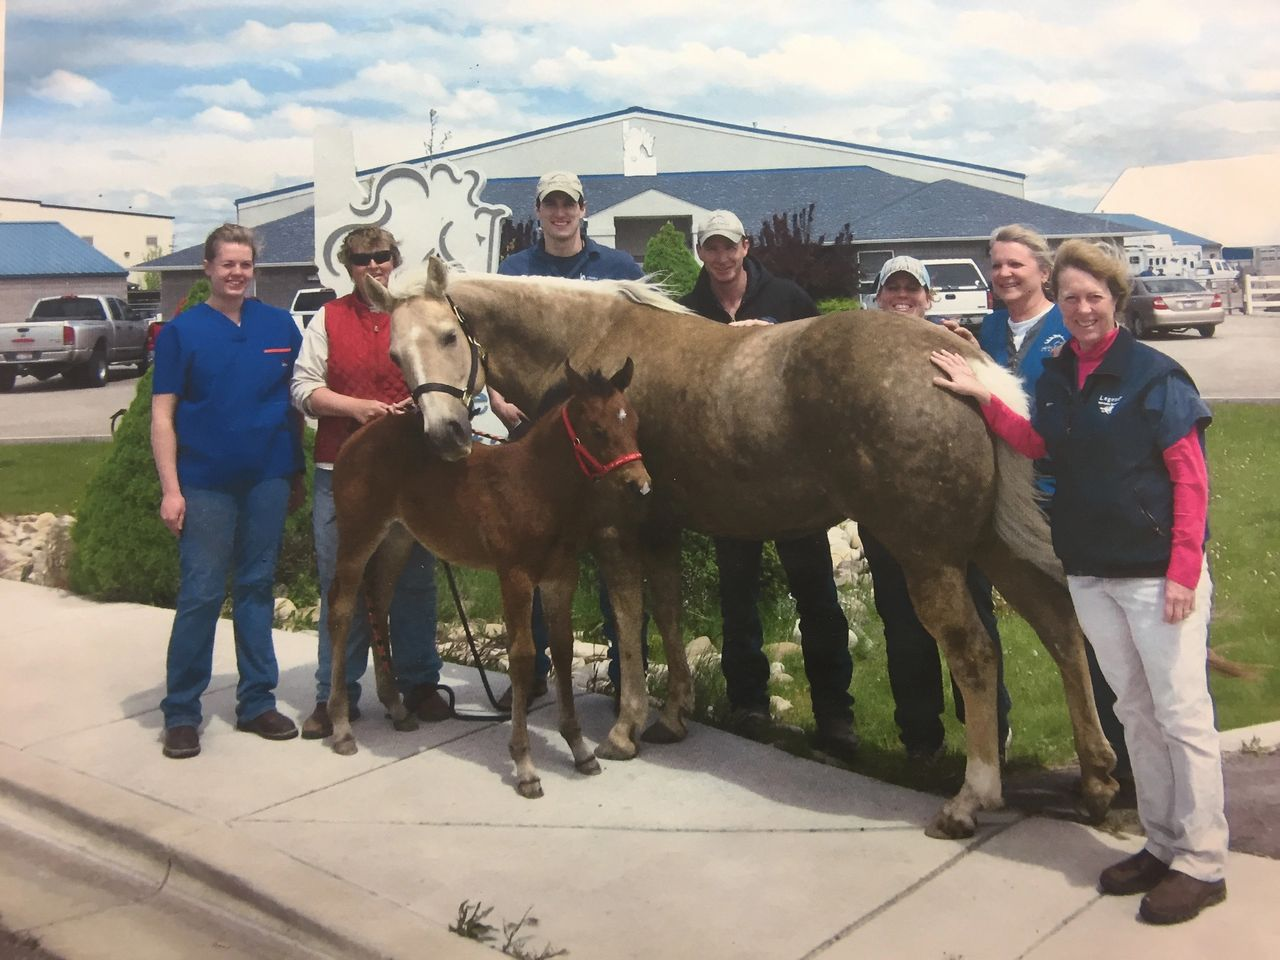 Ava, her recipient mare Zsa Zsa, Kris Troxel, and the IEH crew celebrating the miracle of Ava's conception, transfer and arrival in 2010.